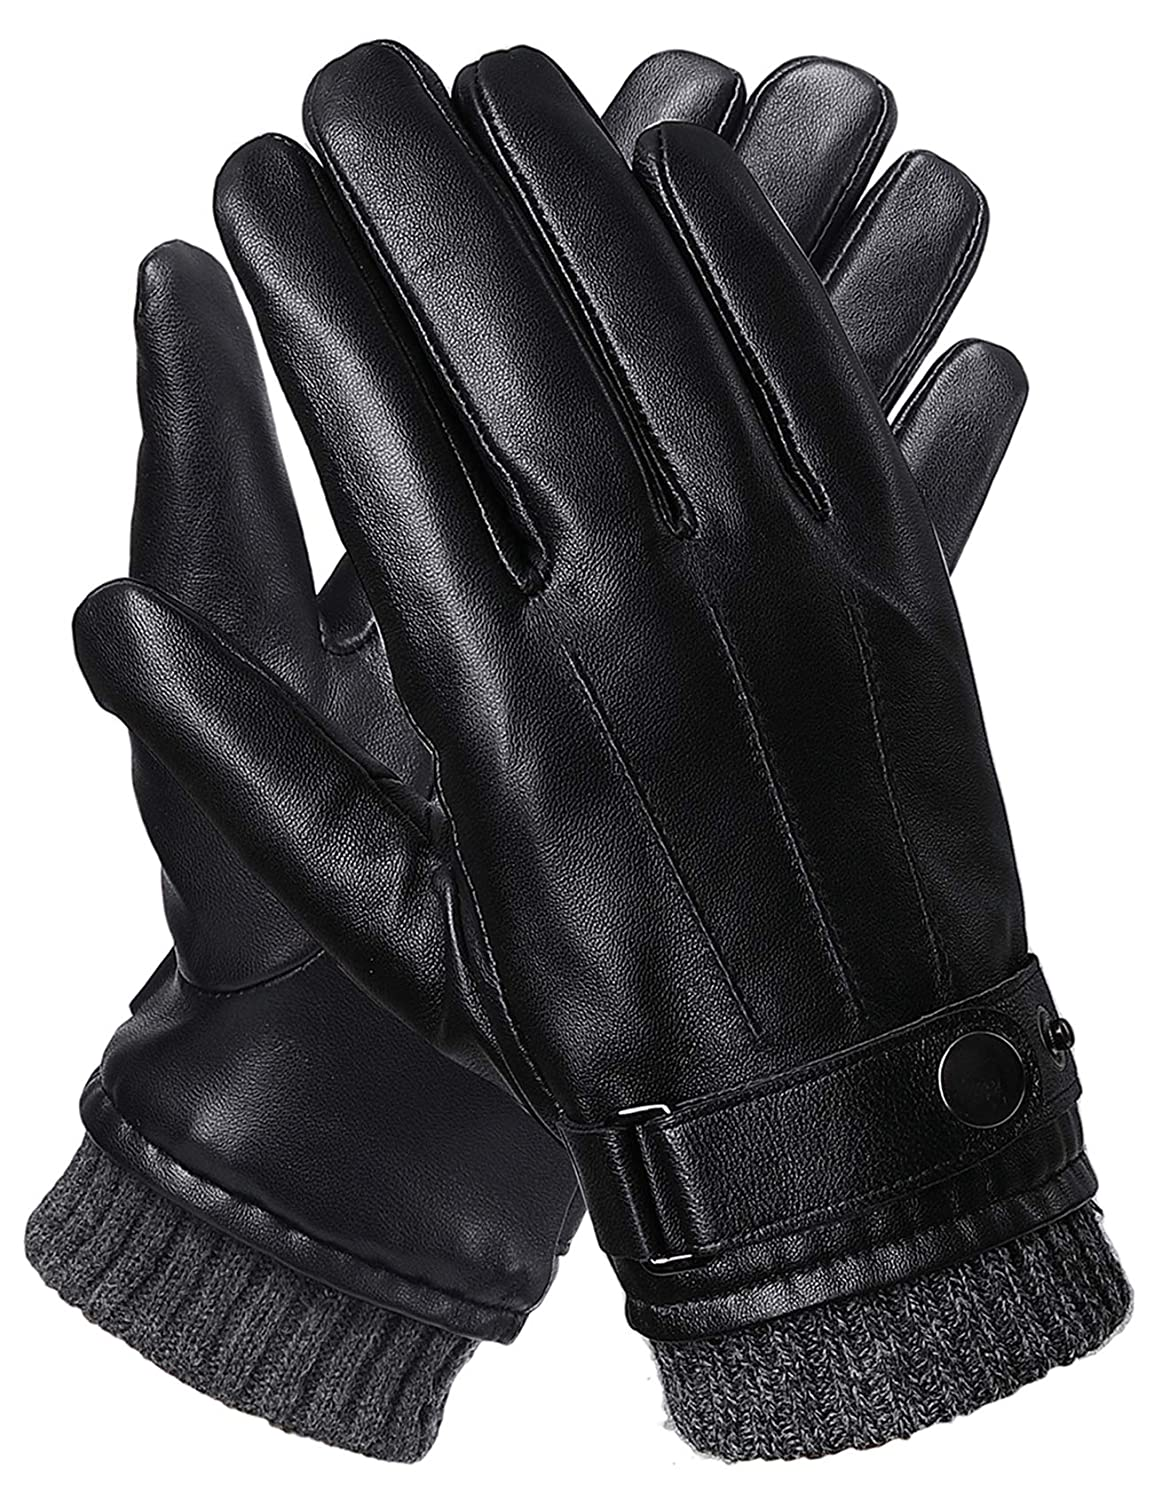 Full-hand Touchscreen Gifts Boxes Driving Texting Black Winter Gloves Mens Leather Gloves M